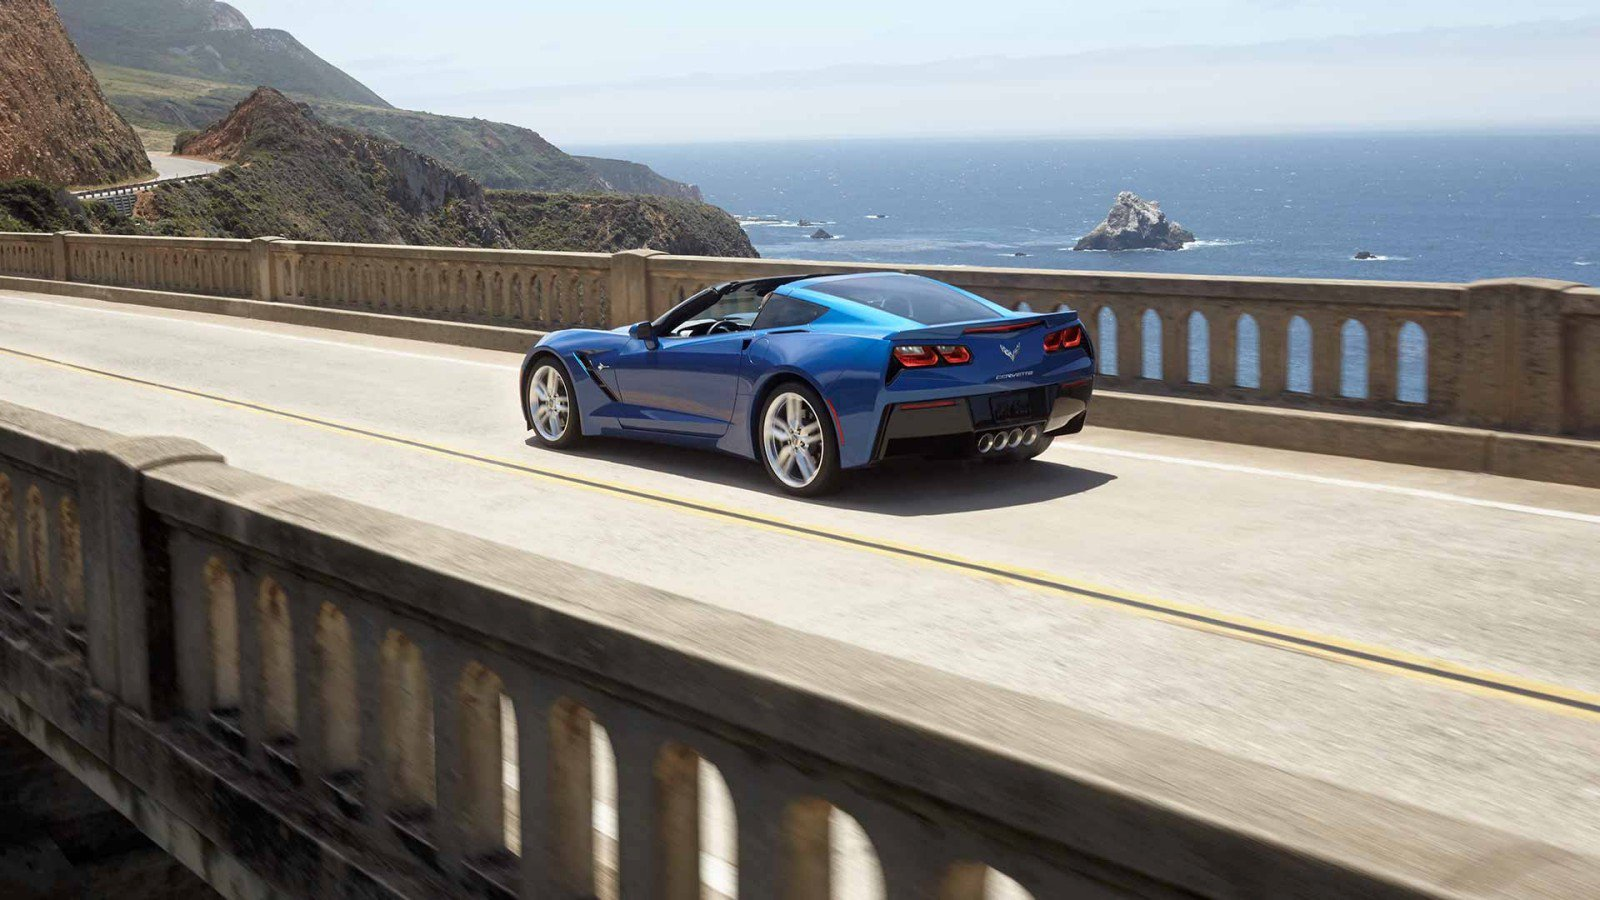 New-Chevy-Corvette-For-Sale---Weber-Chevrolet